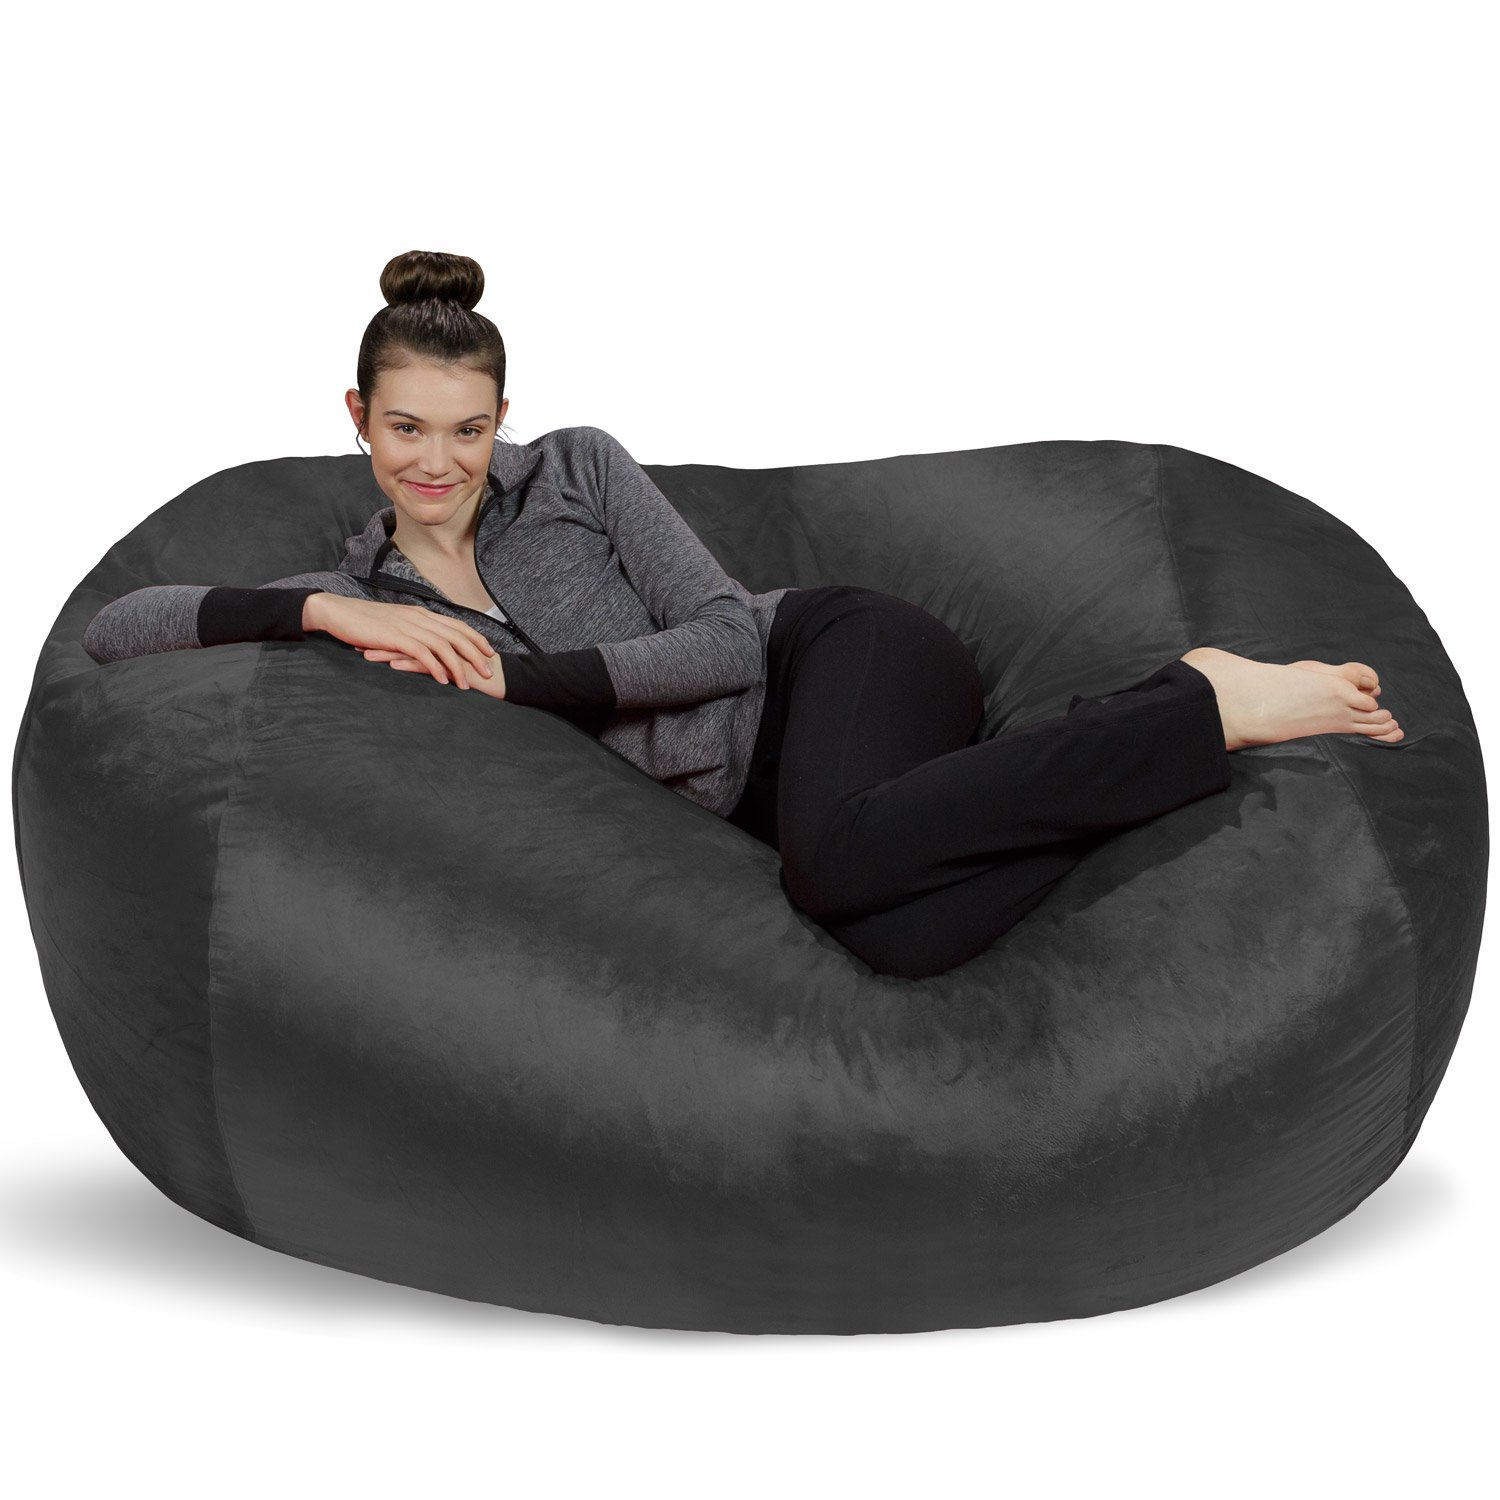 Sofa Sack – Plush Bean Bag Sofas with Super Soft Microsuede Cover – XL Memory Foam Stuffed Lounger Chairs for Kids, Adults, Couples – Jumbo Bean Bag Chair Furniture – Charcoal 6